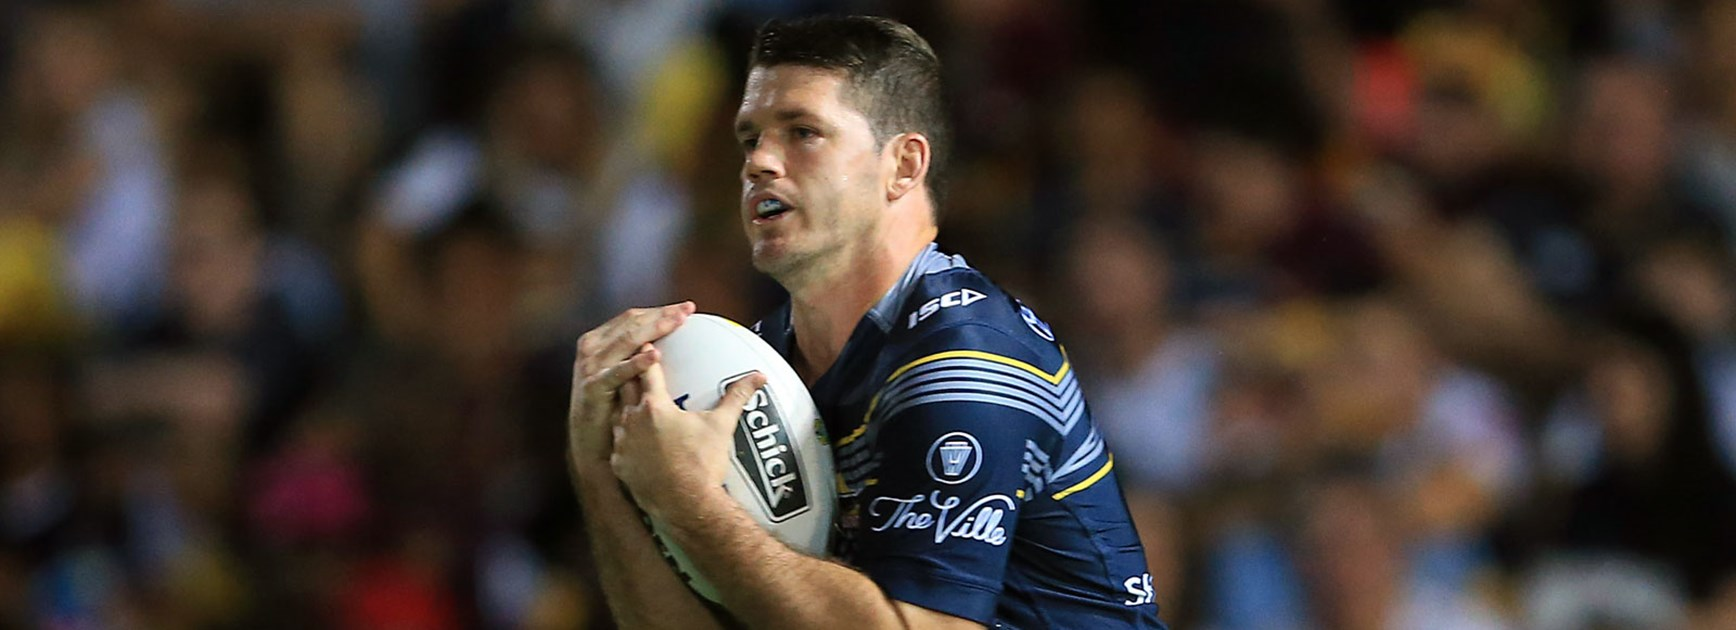 Cowboys fullback Lachlan Coote against the Broncos in Finals Week 2